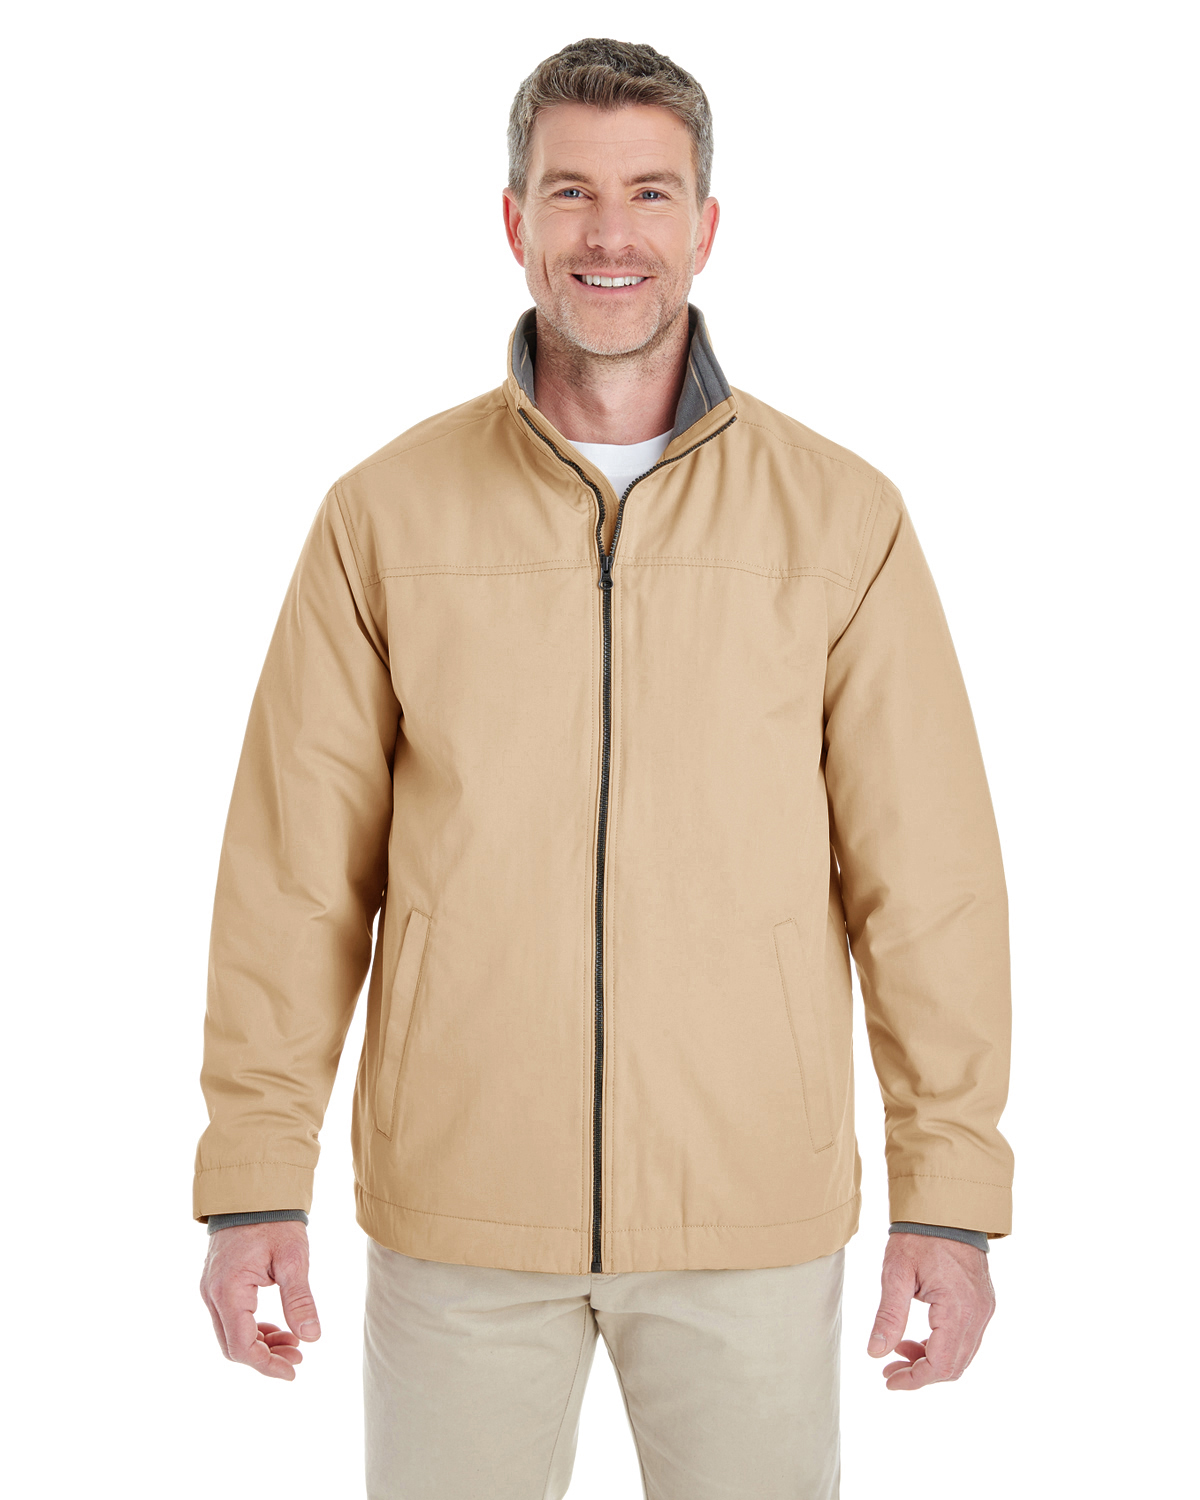 Devon & Jones DG794 - Men's Hartford All-Season Club Jacket